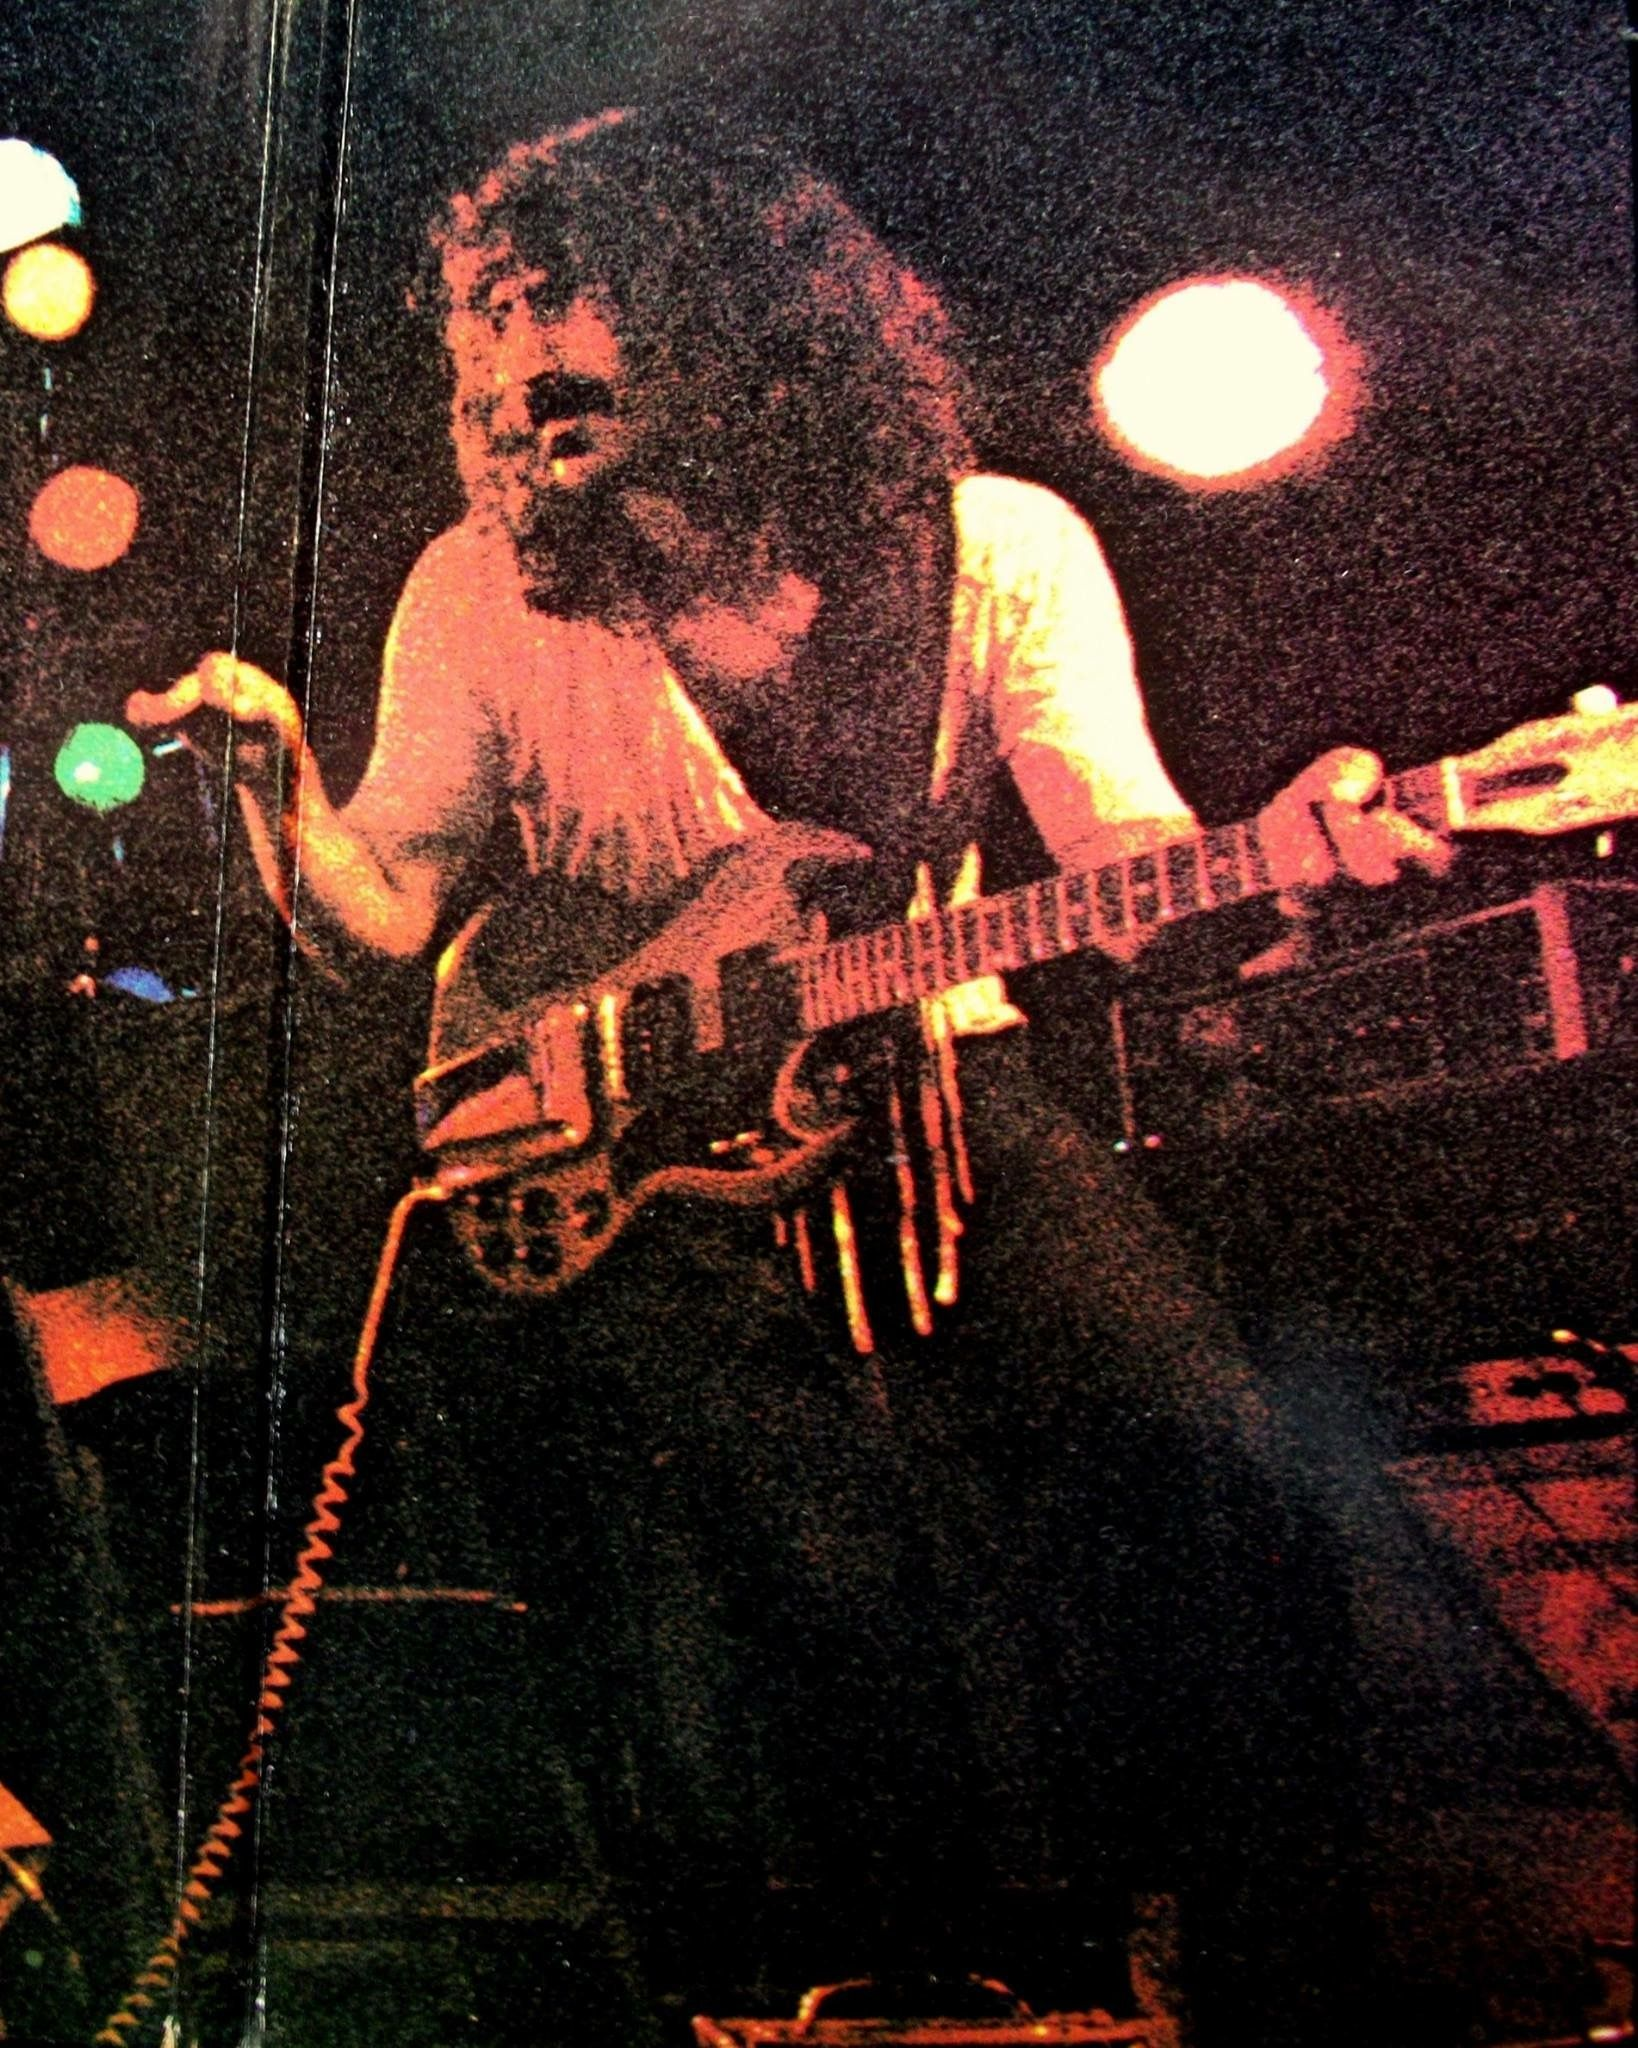 Frank Zappa Happy Birthday intended for pindiane mccashen on fz | pinterest | frank zappa and musicians